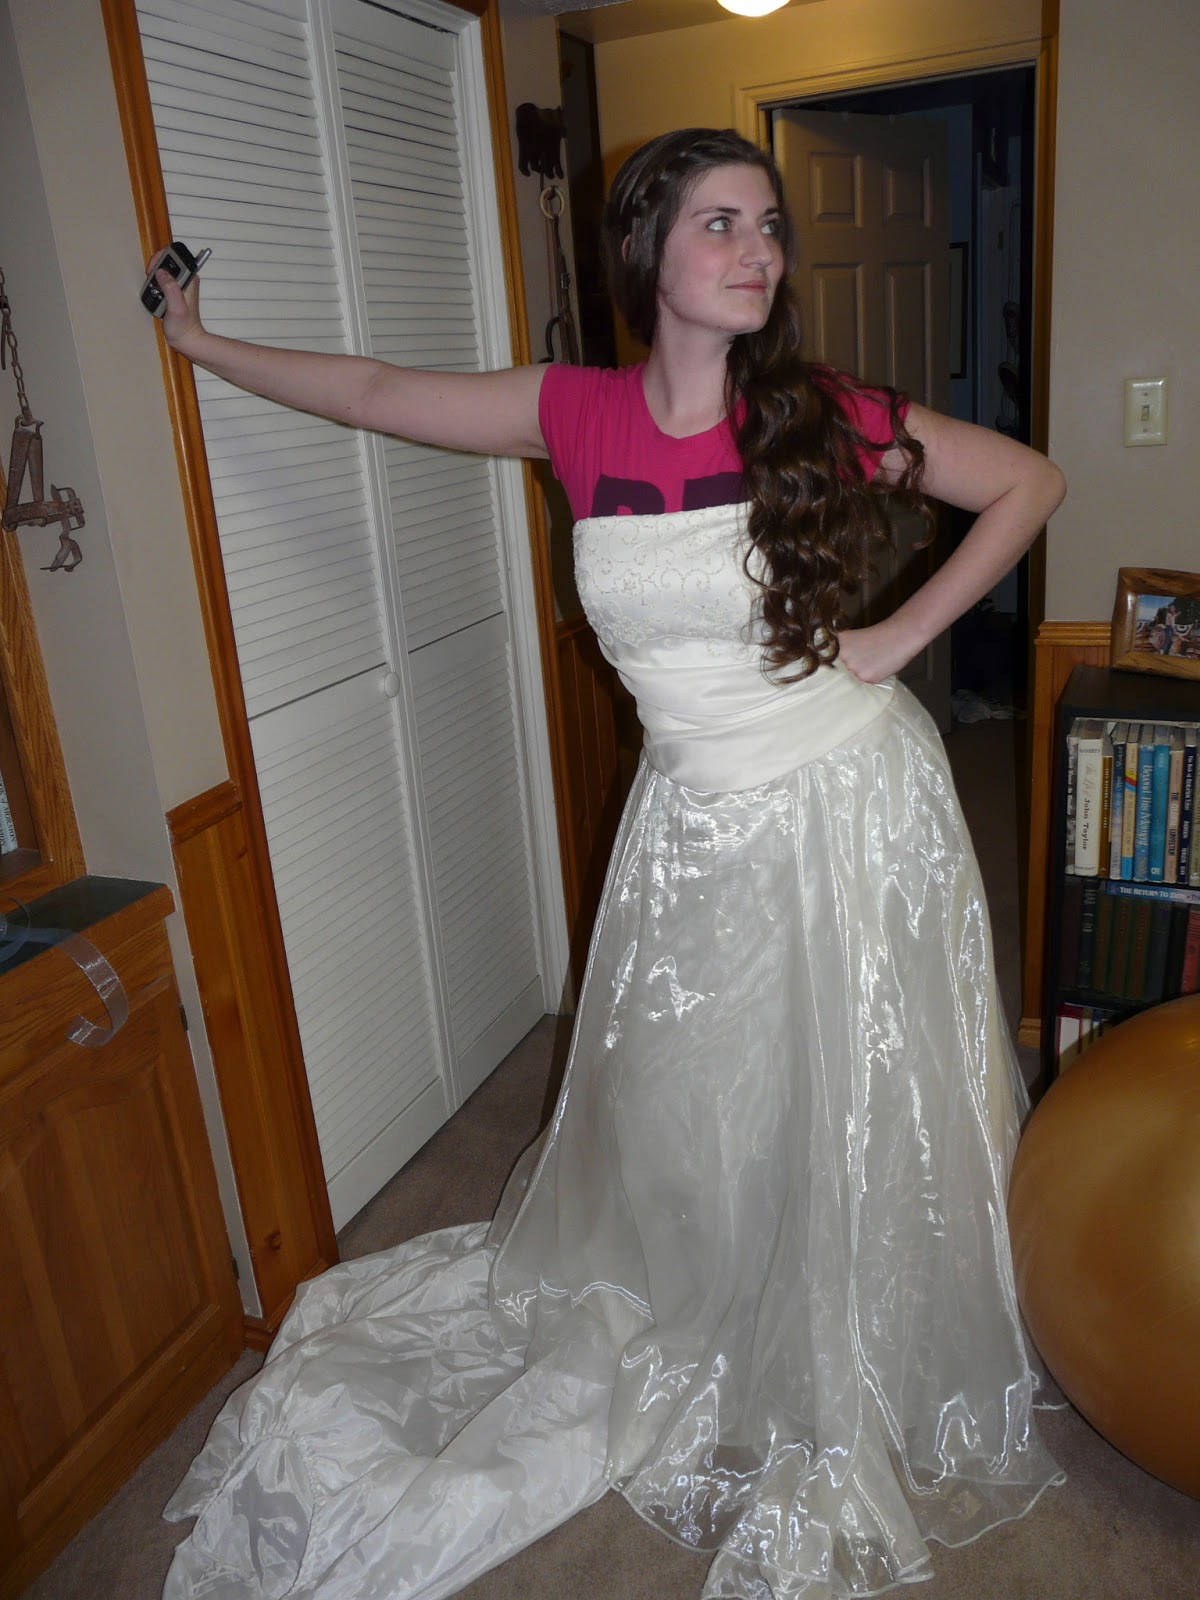 Duct Tape Wedding Dresses - Slip Dress | Dressed Up Girl